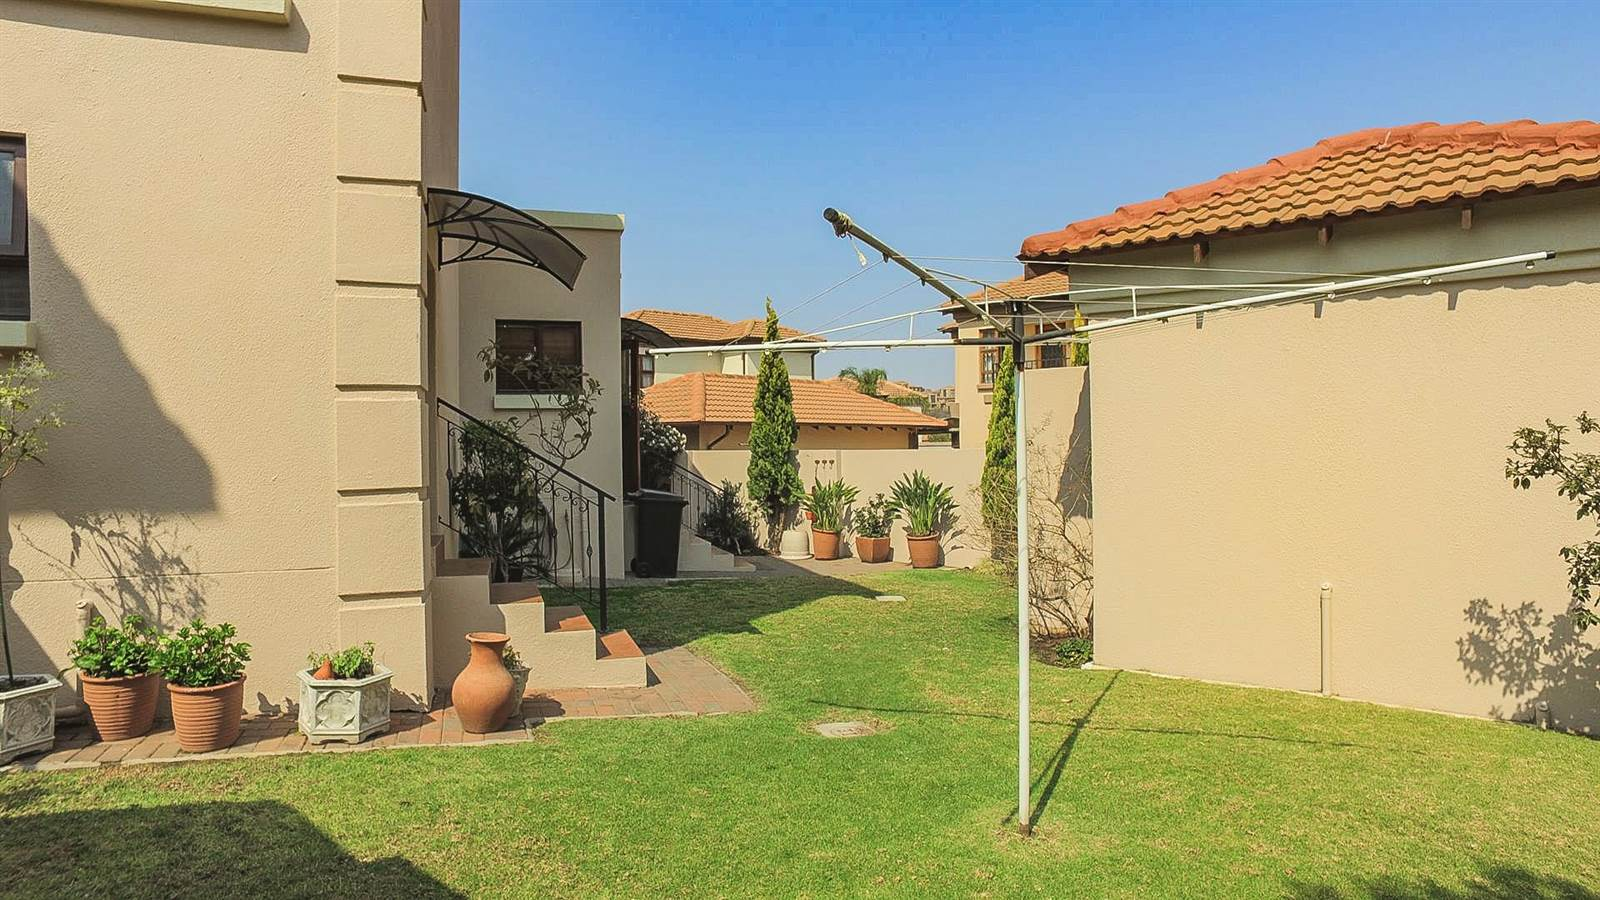 4 Bedroom Townhouse for sale in Mulbarton ENT0067436 : photo#8